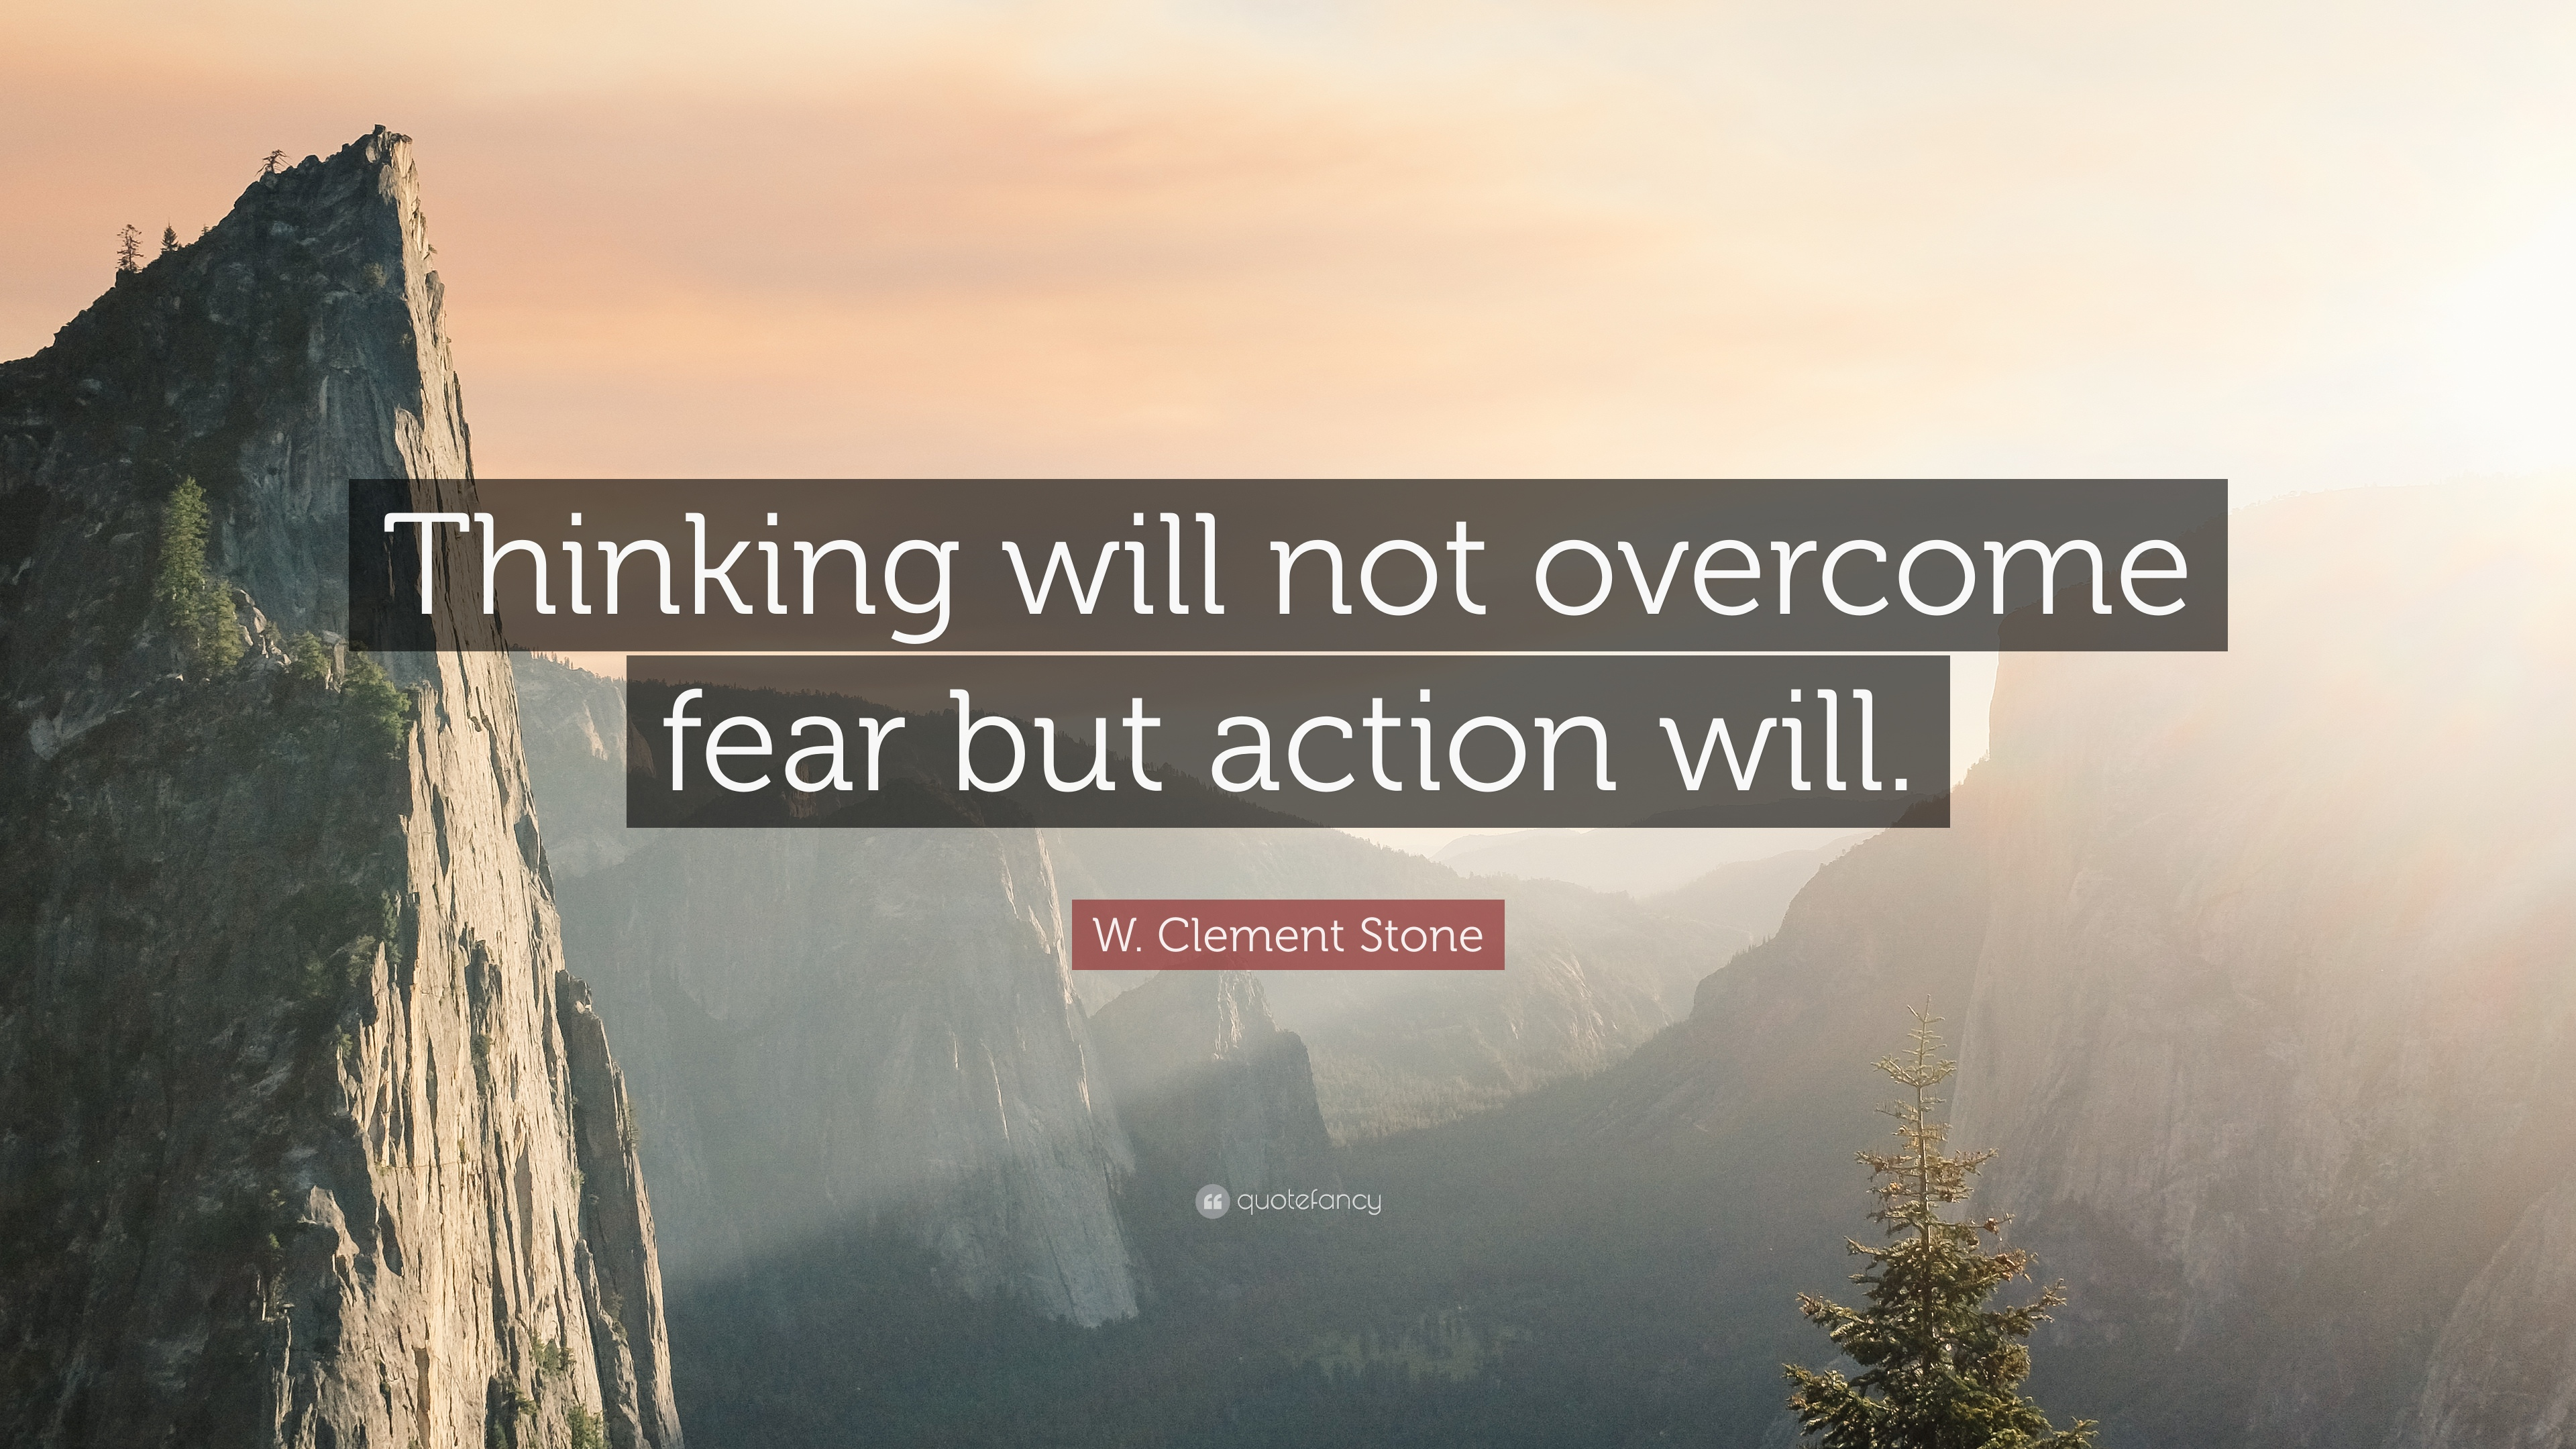 W Clement Stone Quote Thinking Will Not Overcome Fear But Action